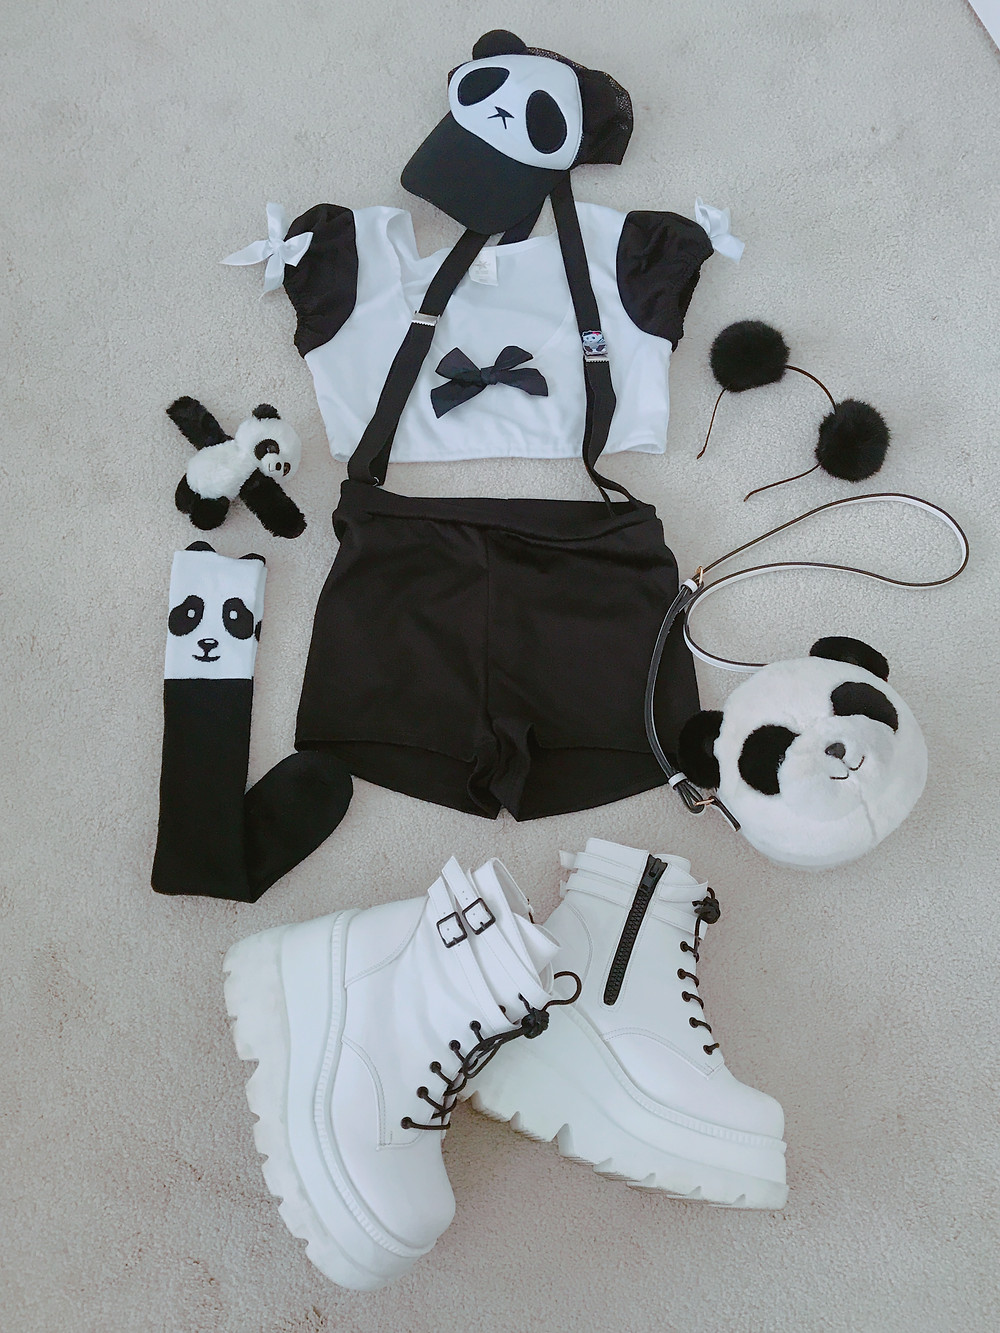 Flat Lay of Pandamonium outfit